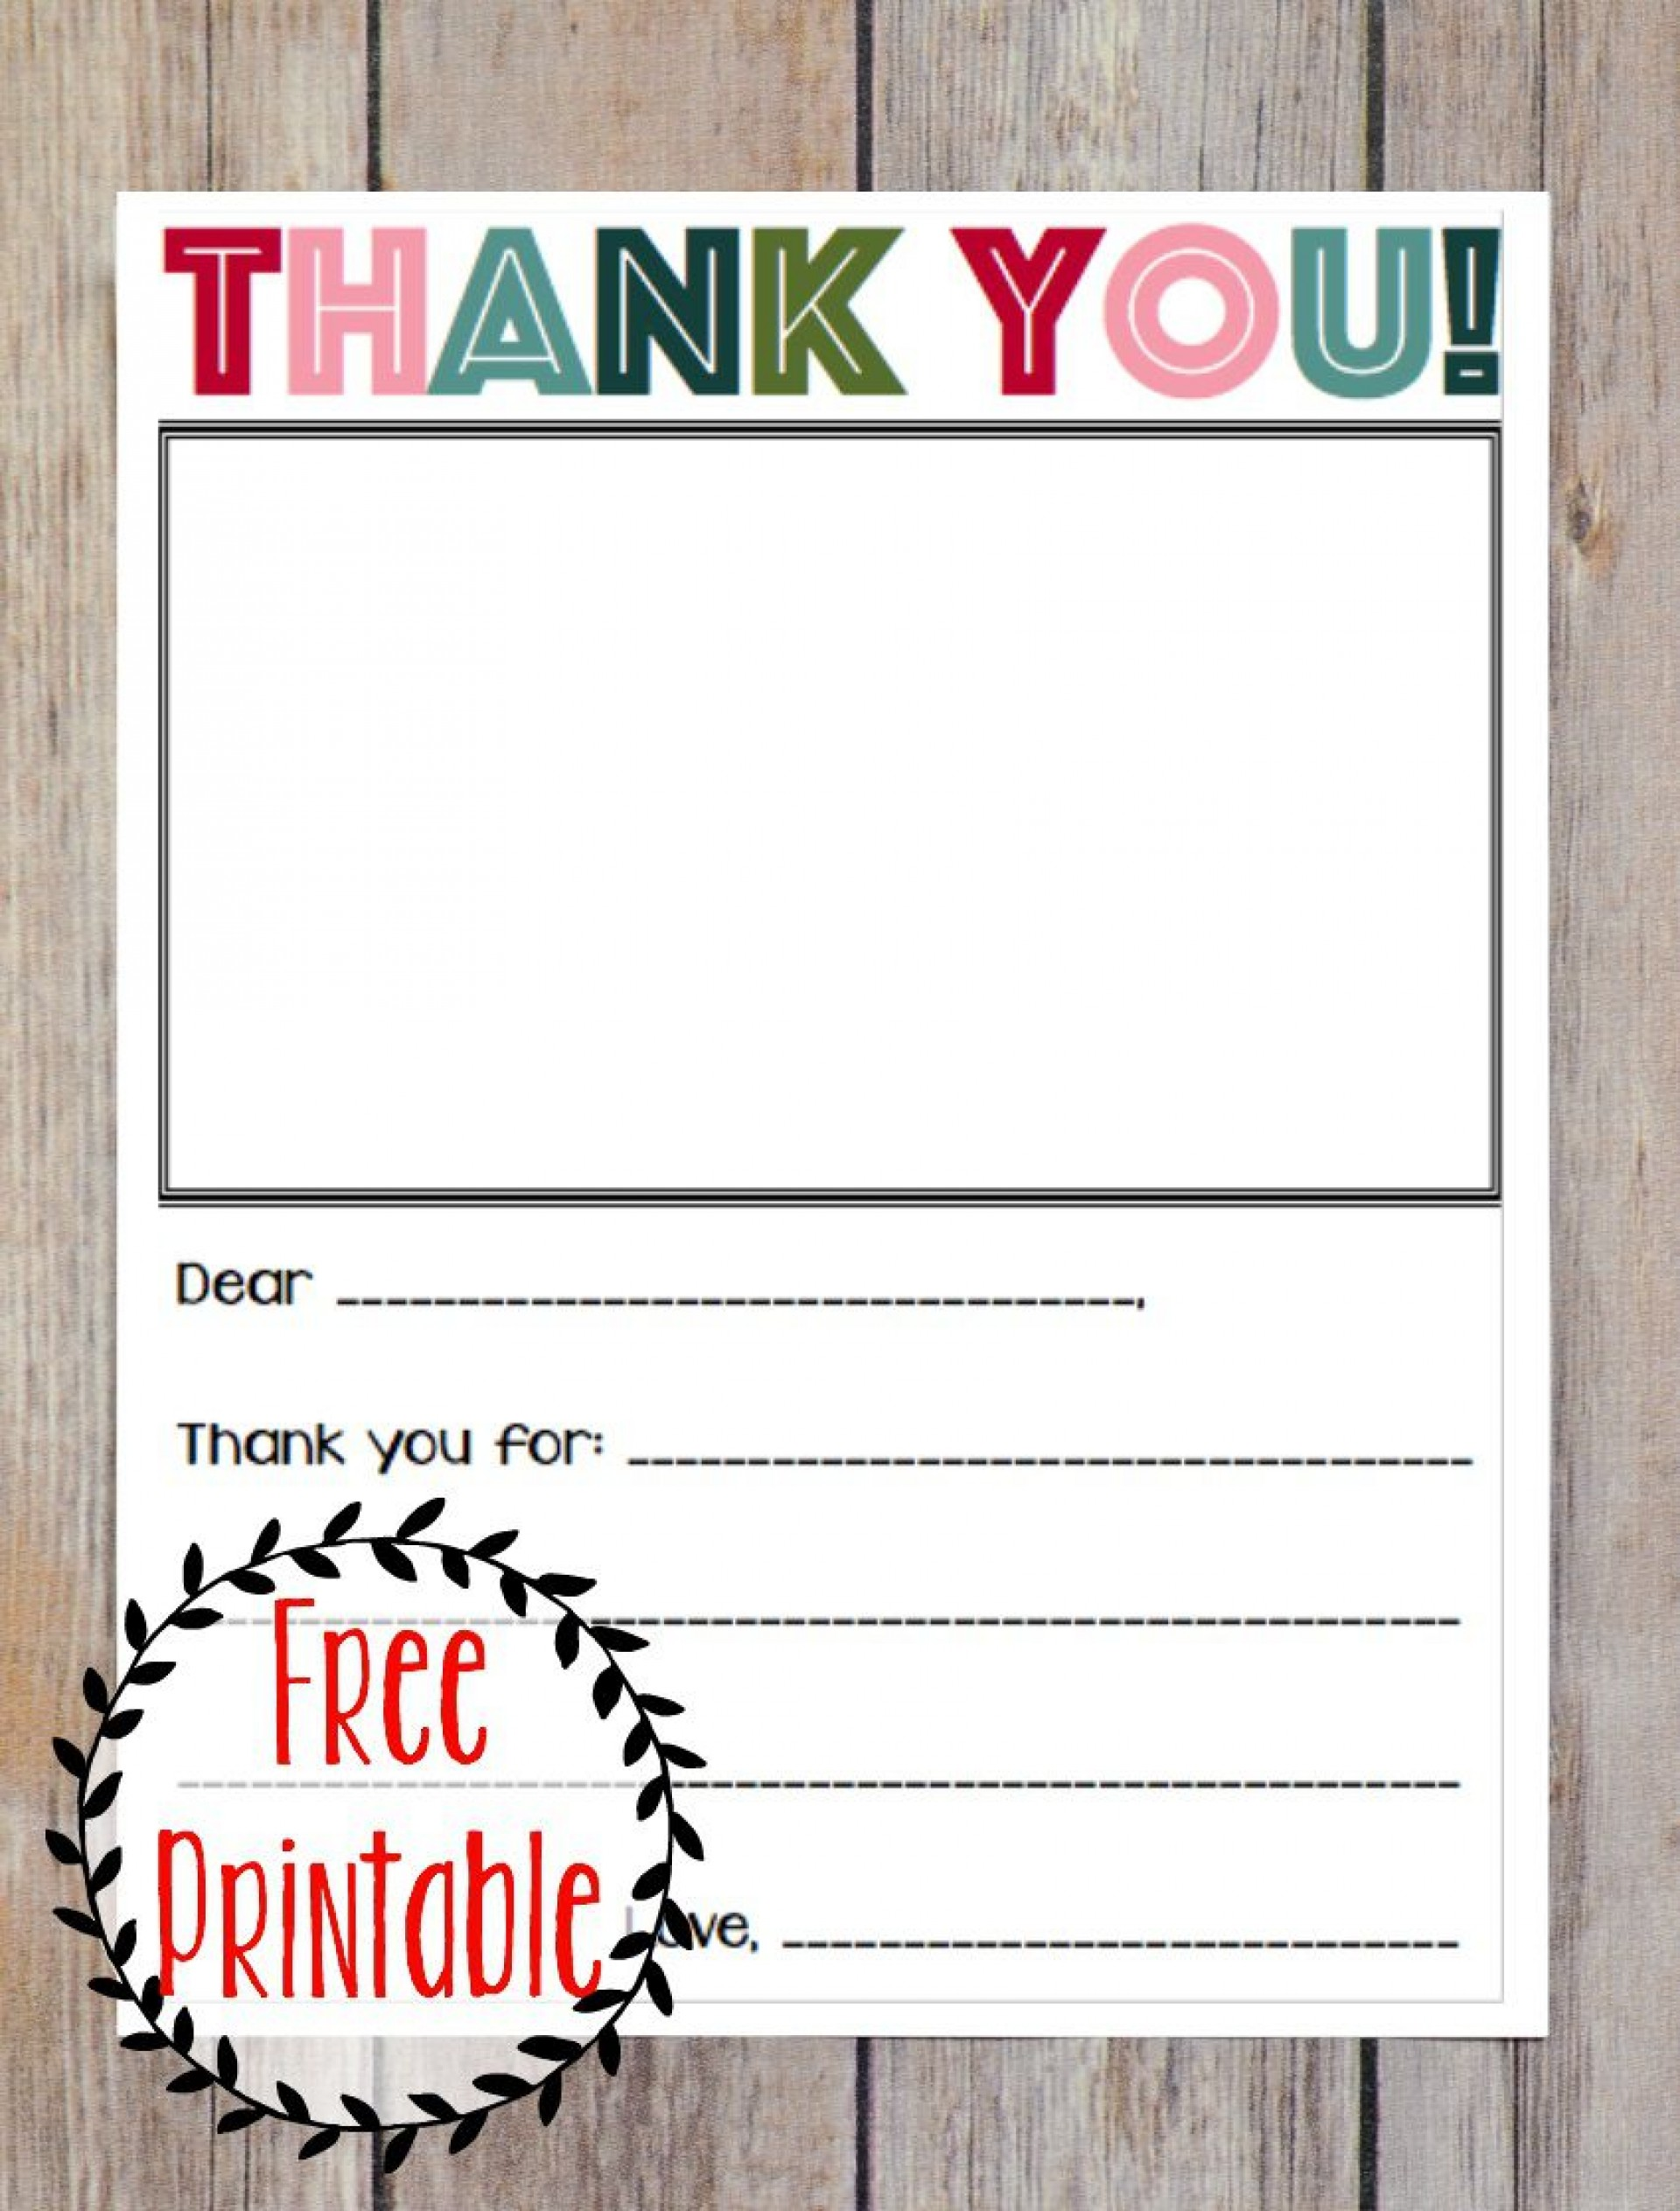 006 Fascinating Thank You Note Template Free Picture  Poshmark Teacher1920